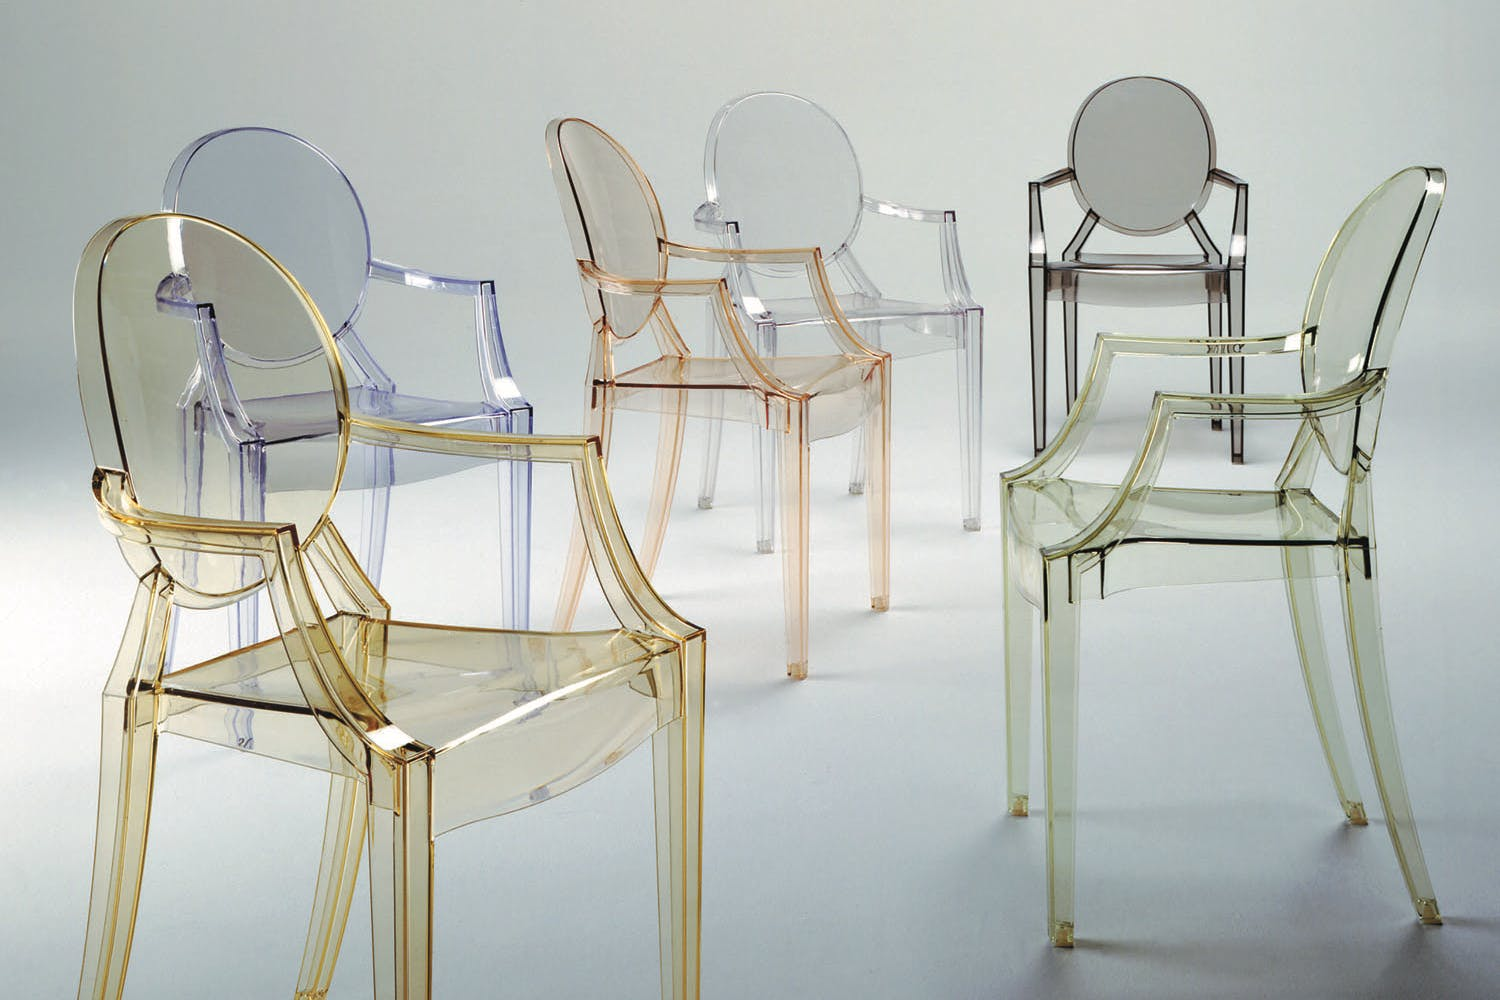 louis ghost chair with arms by philippe starck for kartell. Black Bedroom Furniture Sets. Home Design Ideas